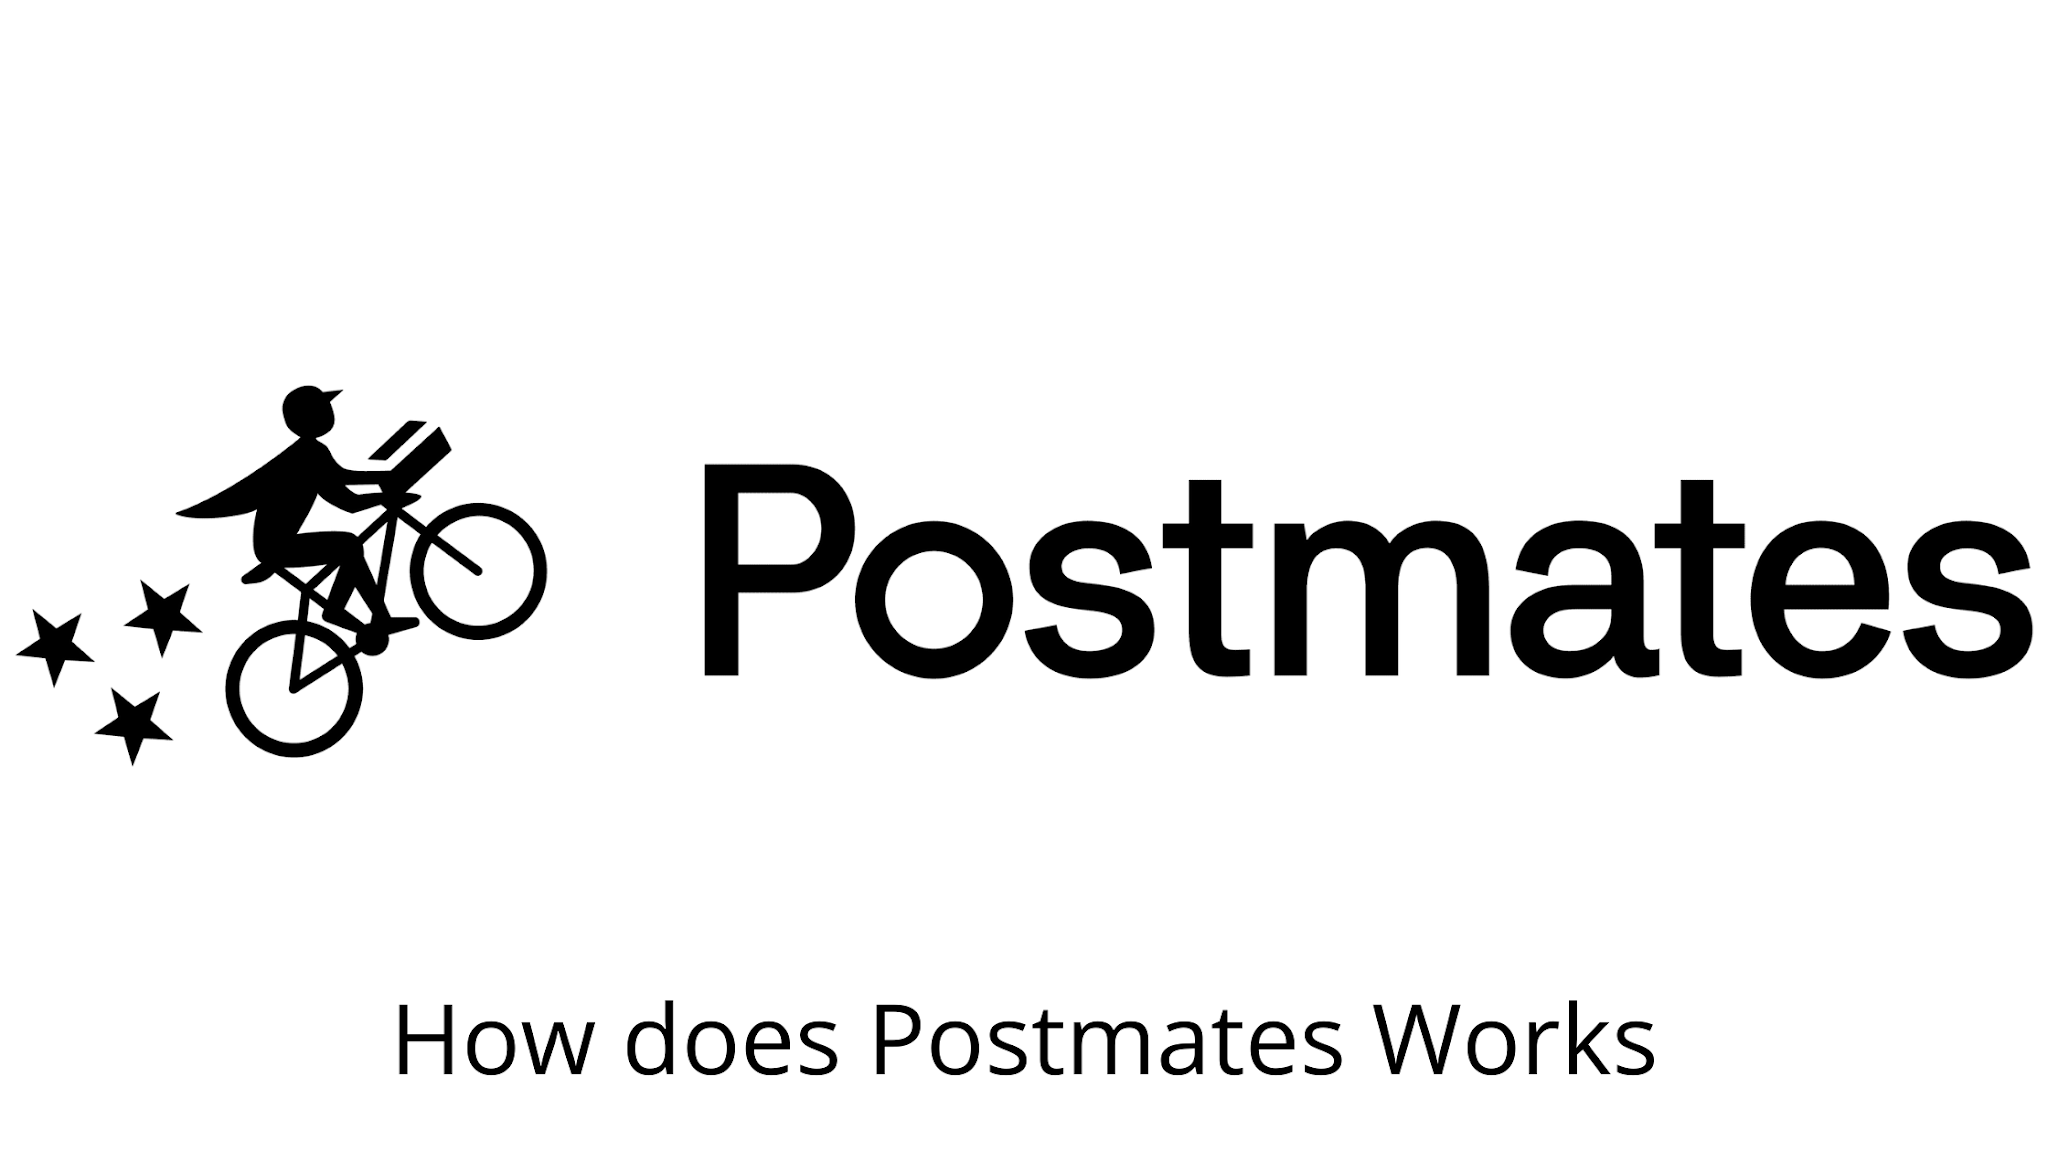 How does Postmates work?